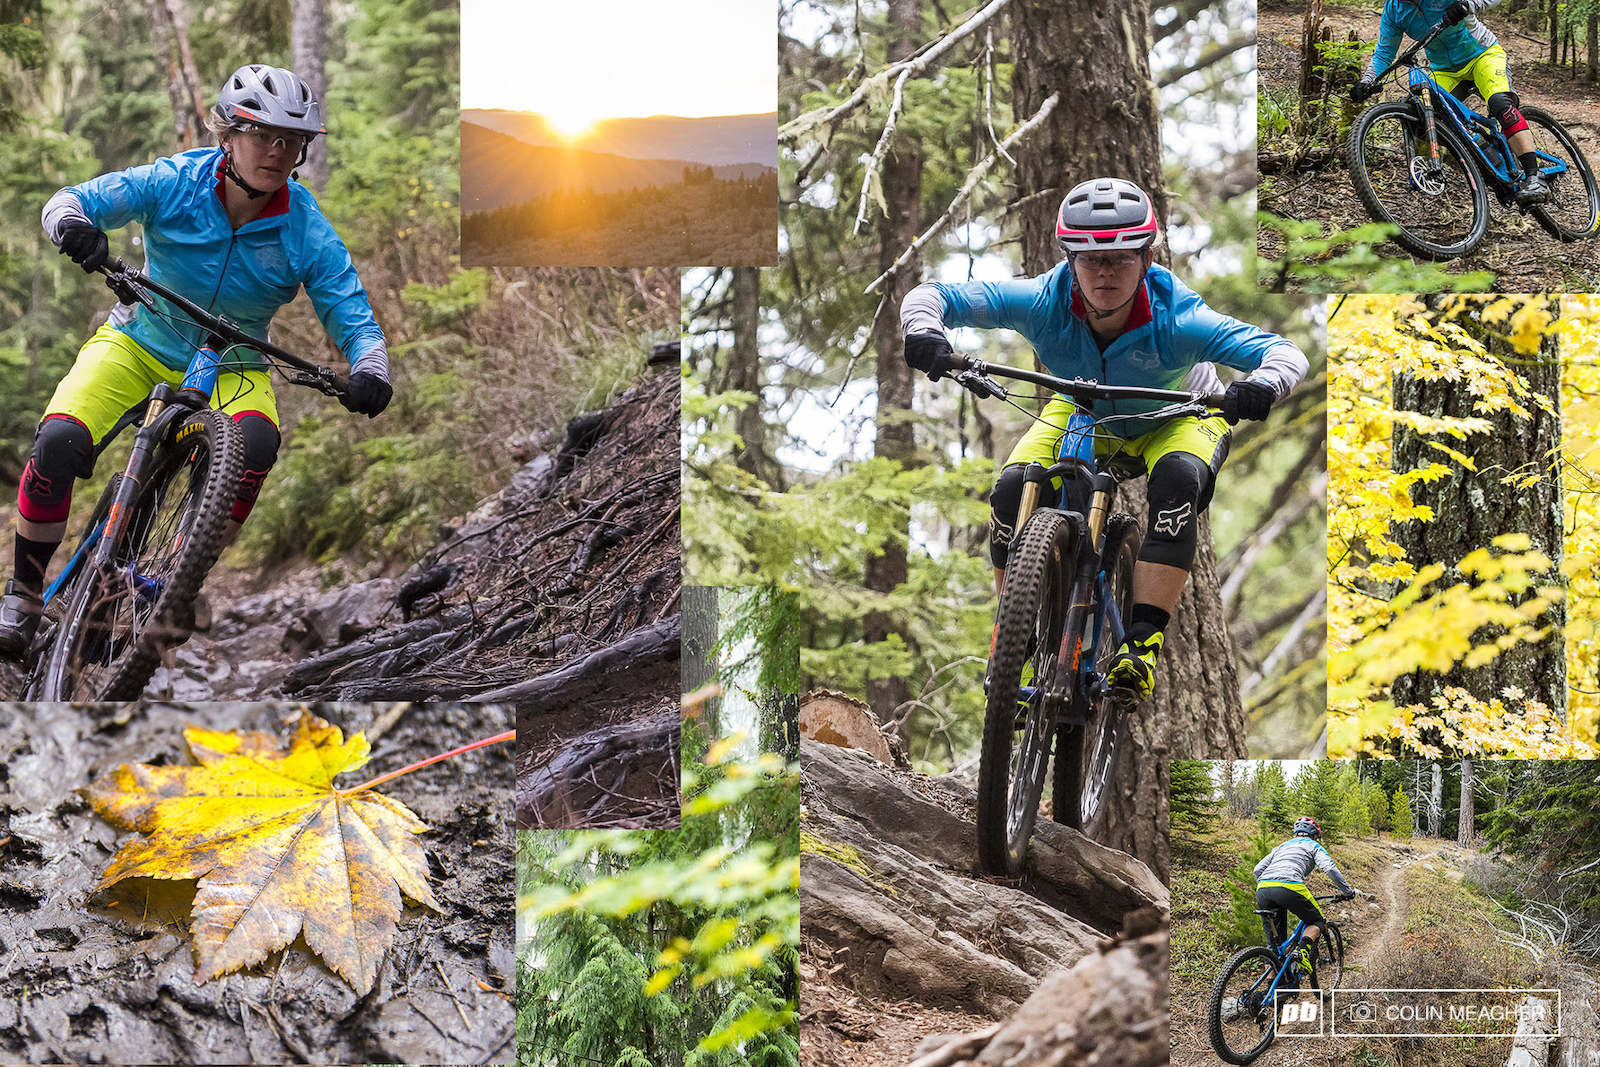 Nikki putting Foxhead s Diffuse Jacket and Lynx shorts to the test on some of the Hood River area trails.